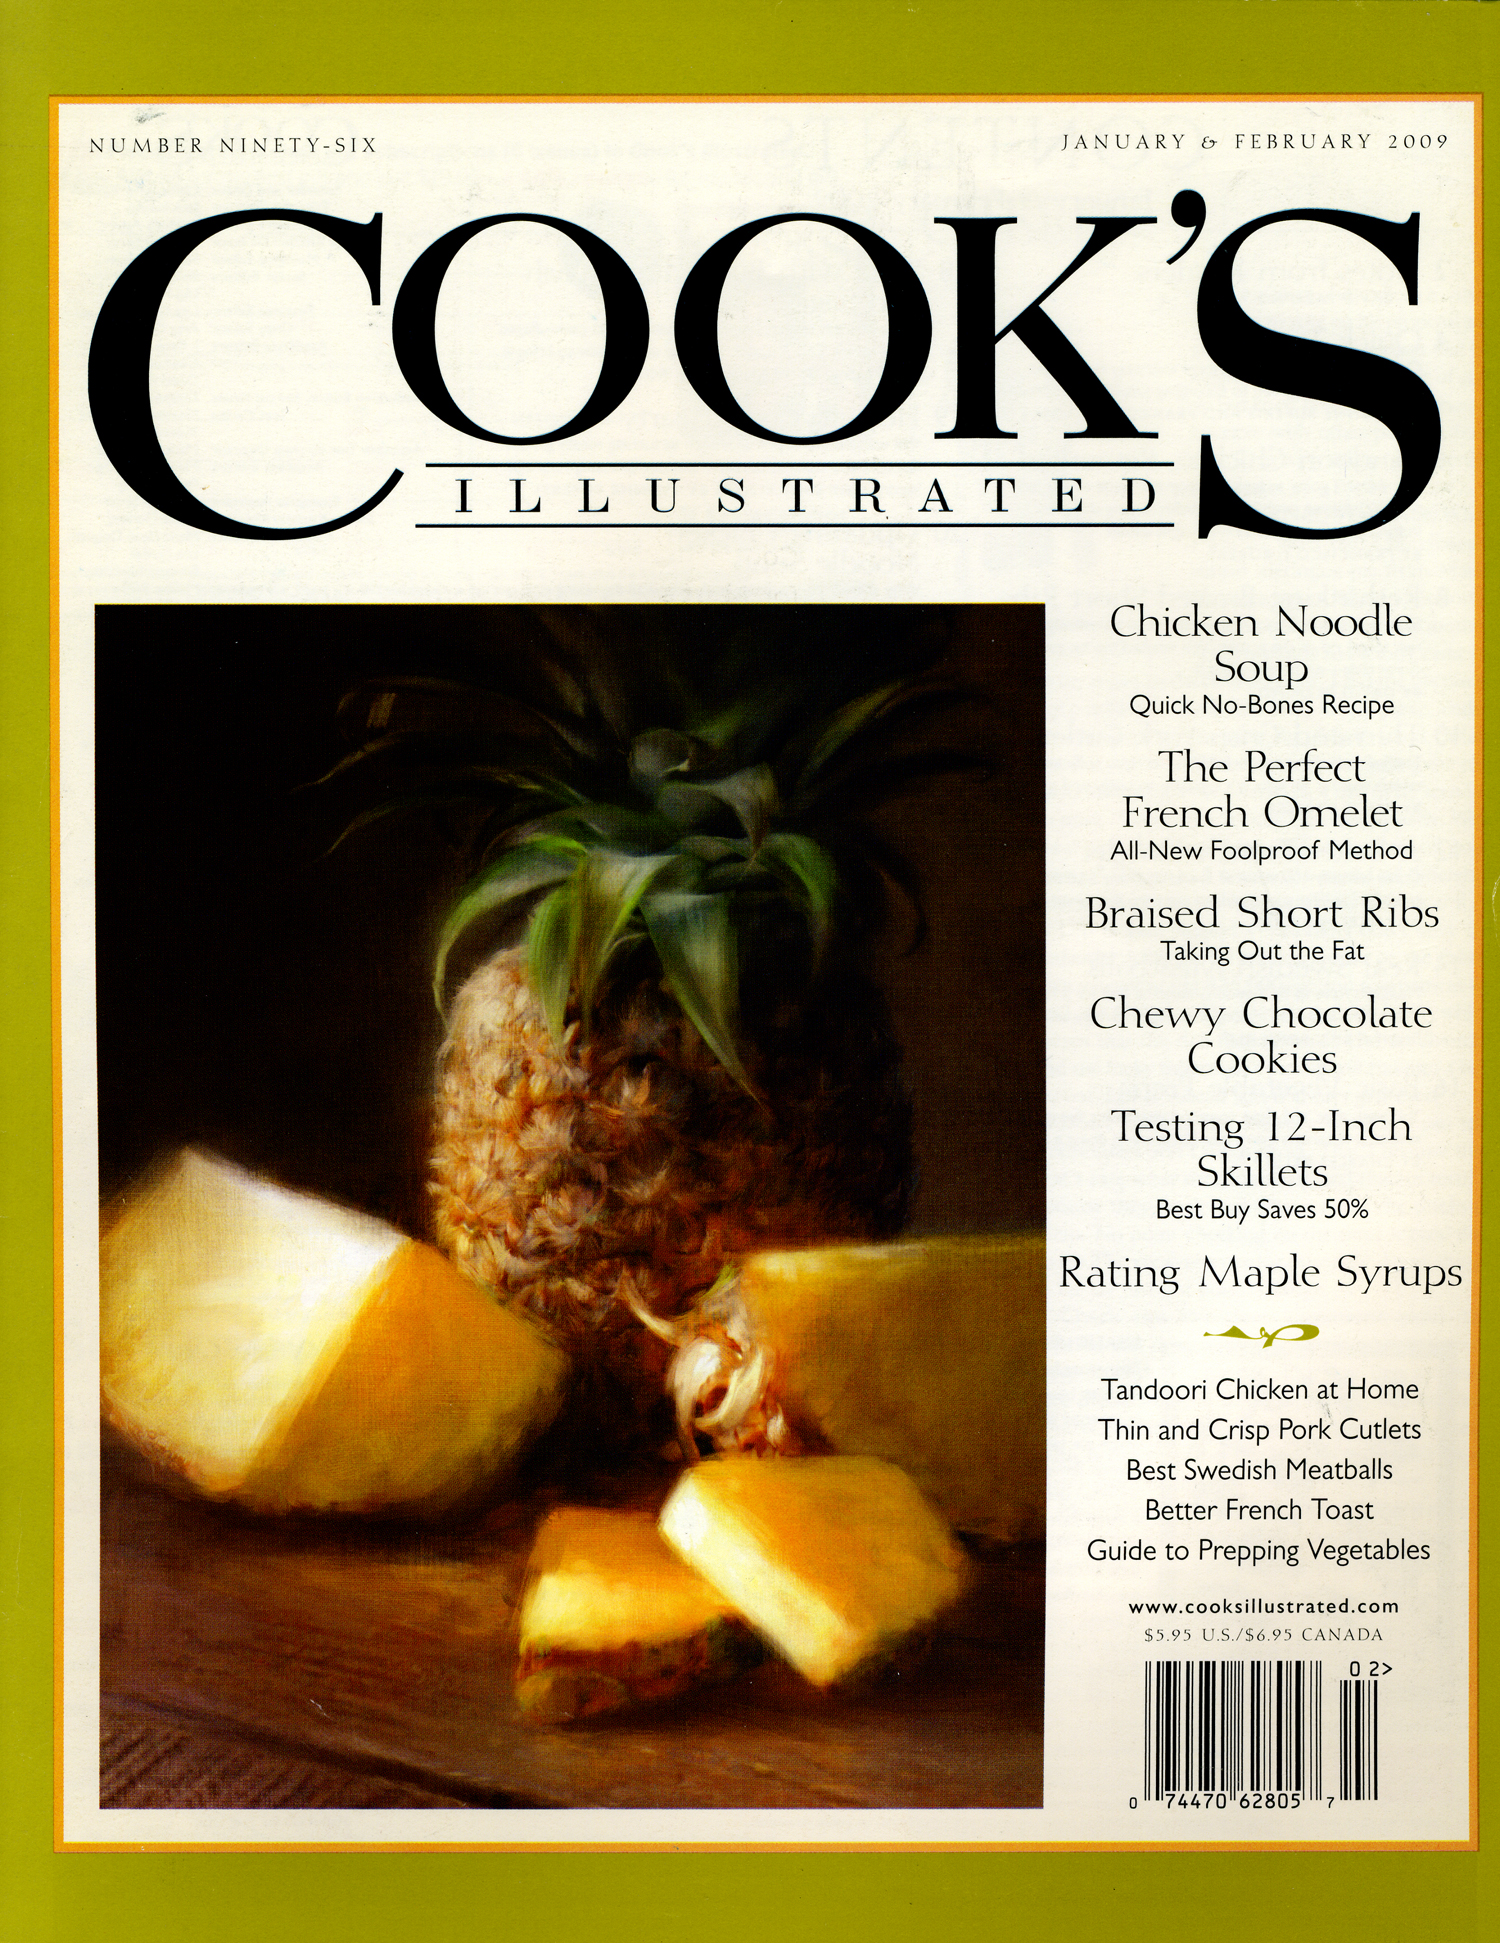 Image result for cook's illustrated magazine covers